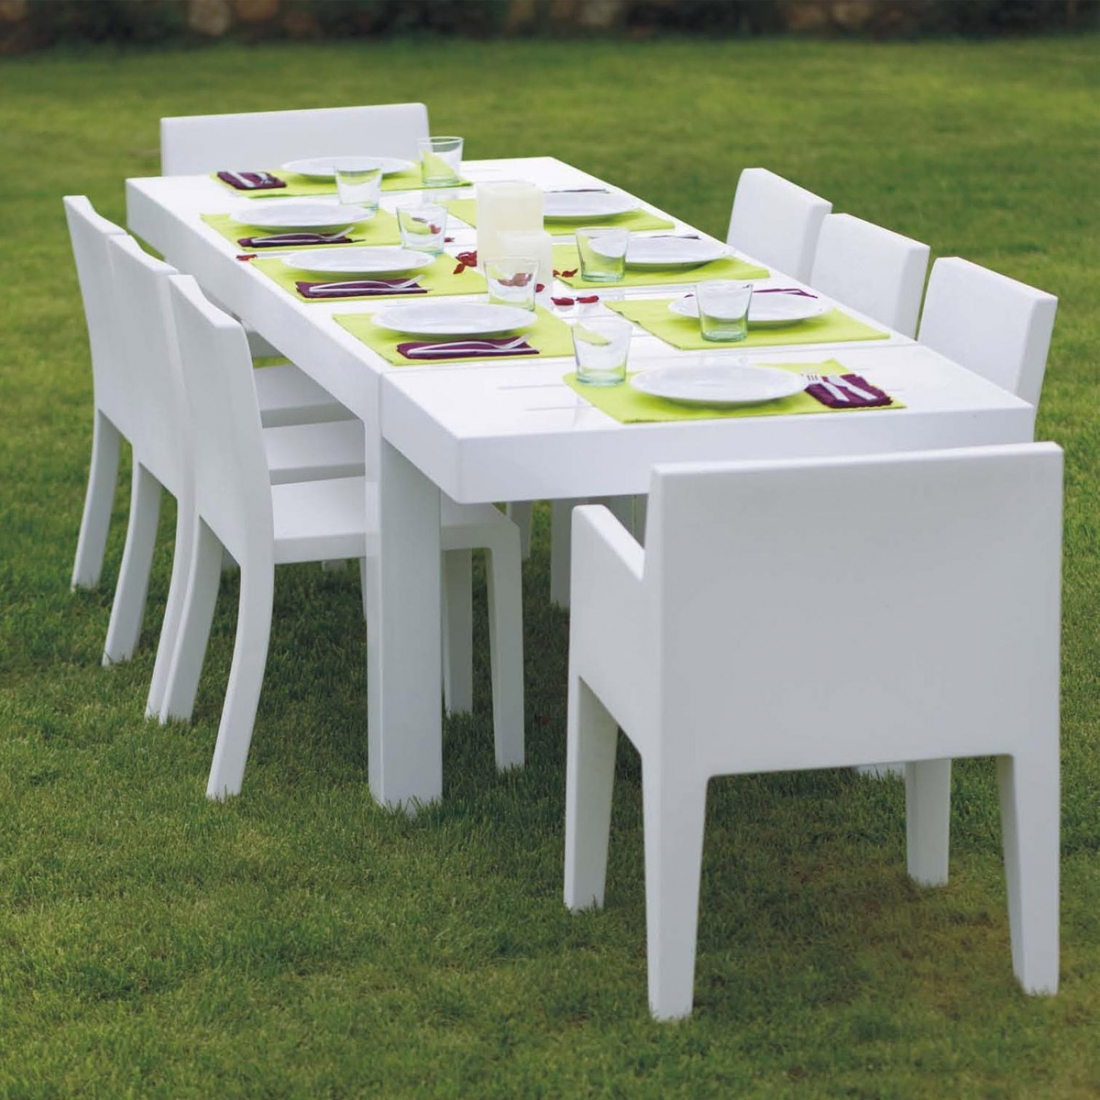 Table de jardin design 12 personnes jut par vondom for Jardin exterieur design